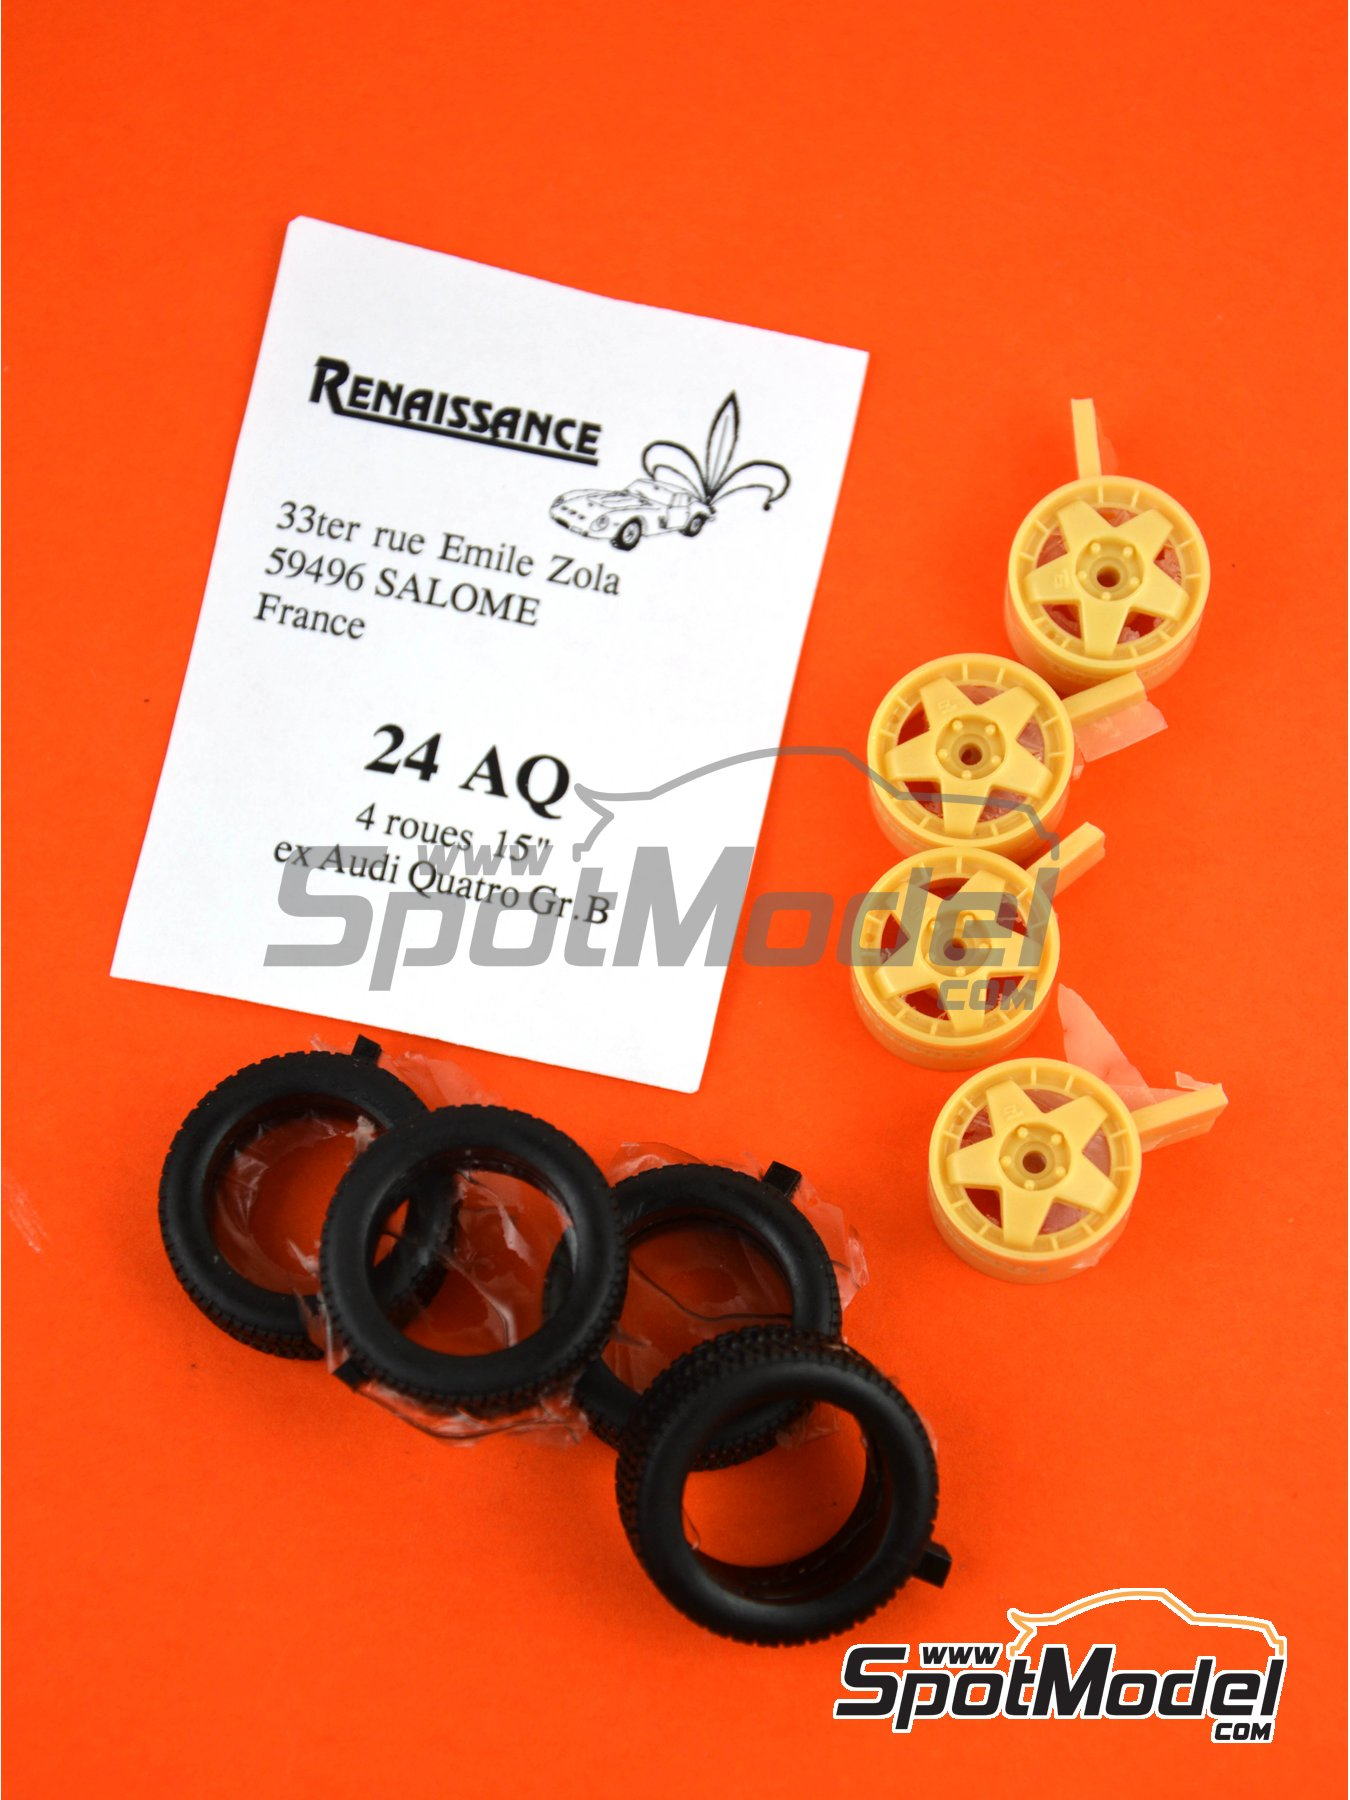 Audi Quattro Group B 15 inches rims | Rims and tyres set in 1/24 scale manufactured by Renaissance Models (ref.24AQ) image